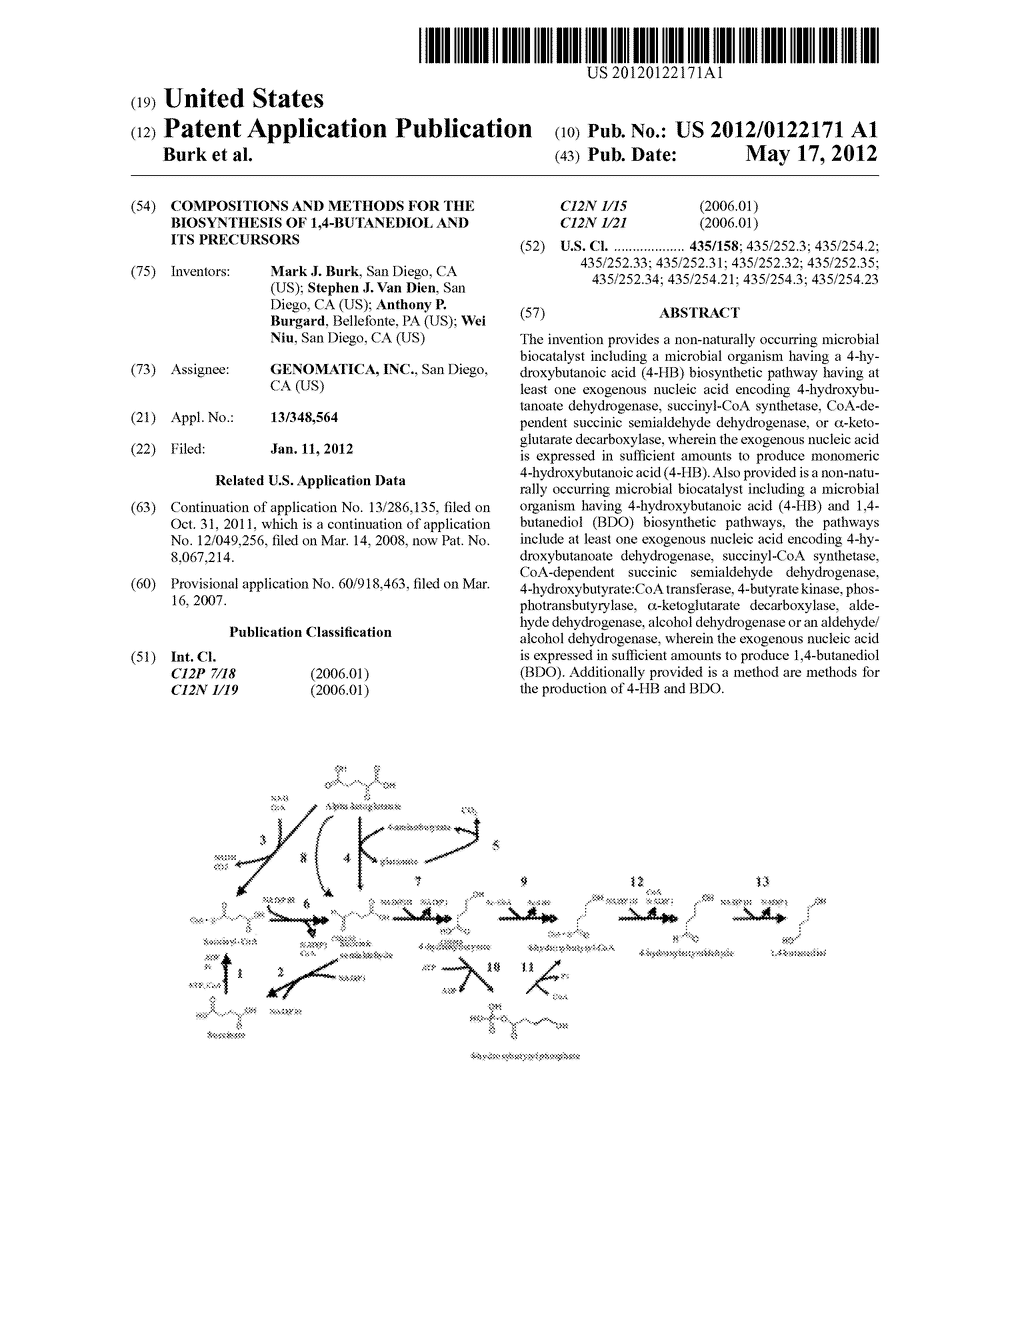 COMPOSITIONS AND METHODS FOR THE BIOSYNTHESIS OF 1,4-BUTANEDIOL AND ITS     PRECURSORS - diagram, schematic, and image 01